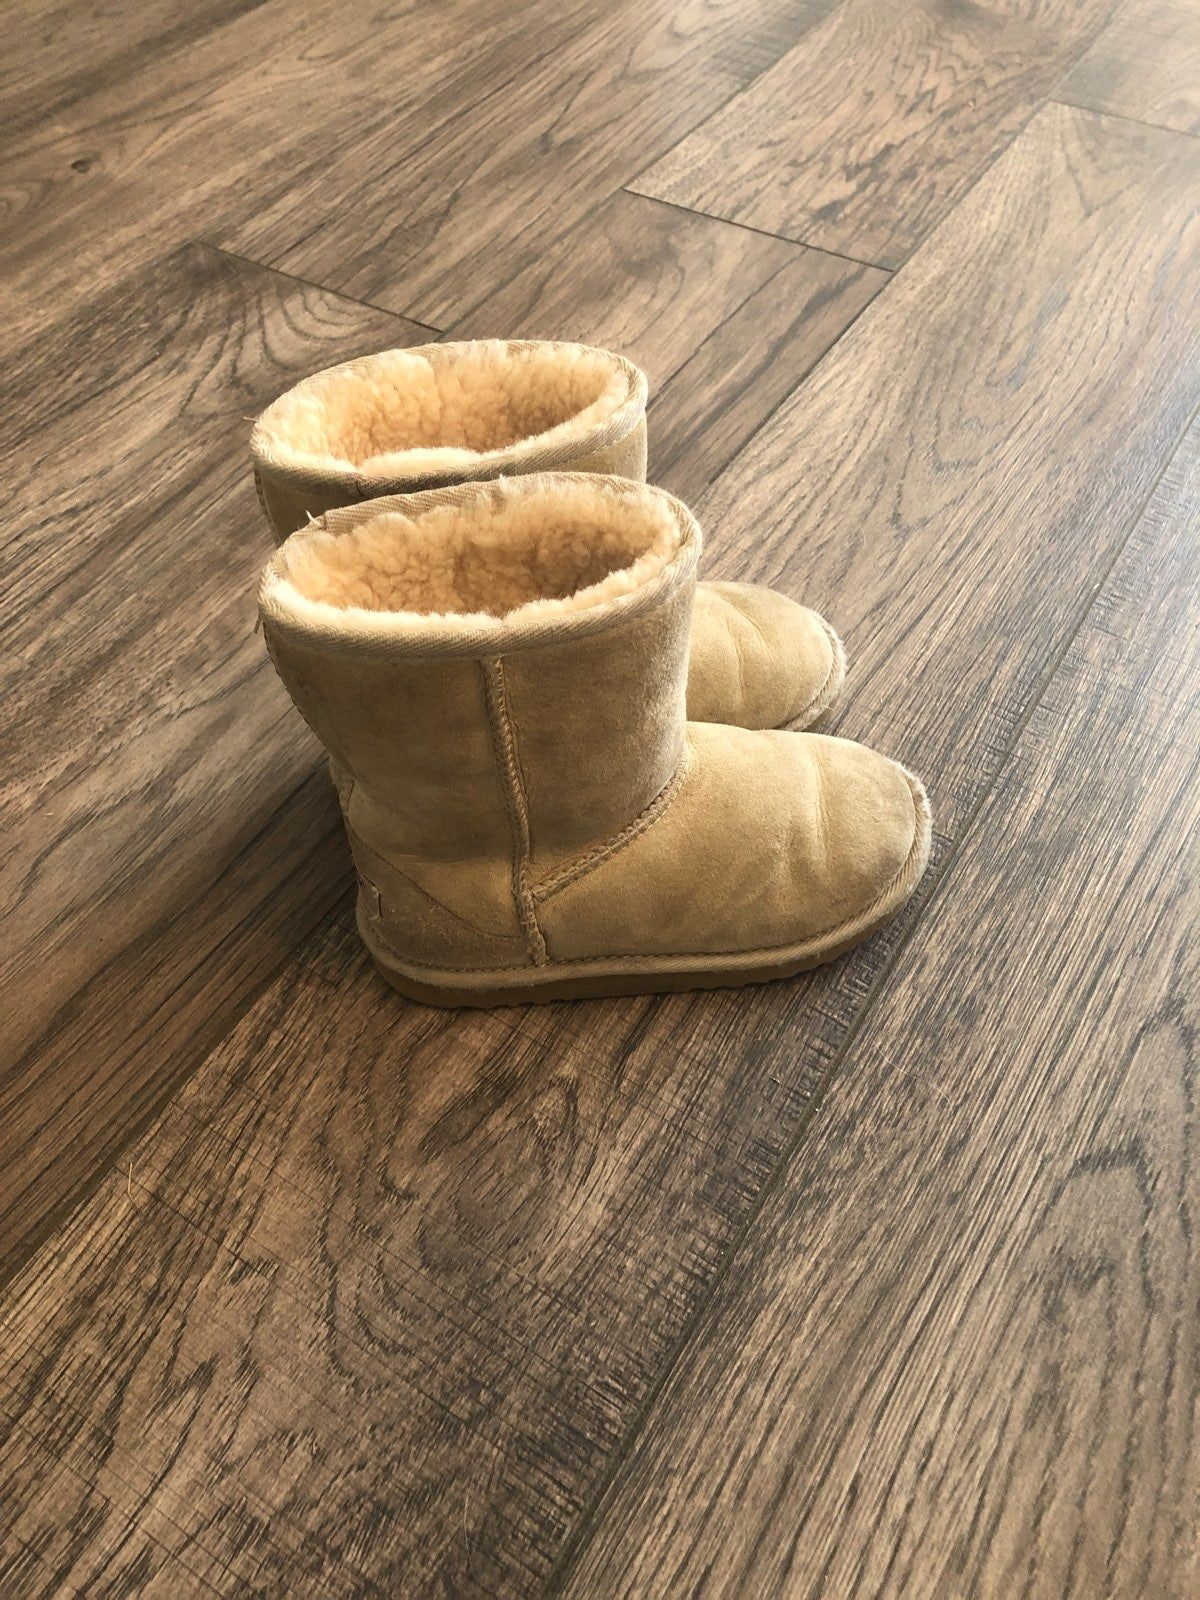 Ugg boots, Bearpaw boots